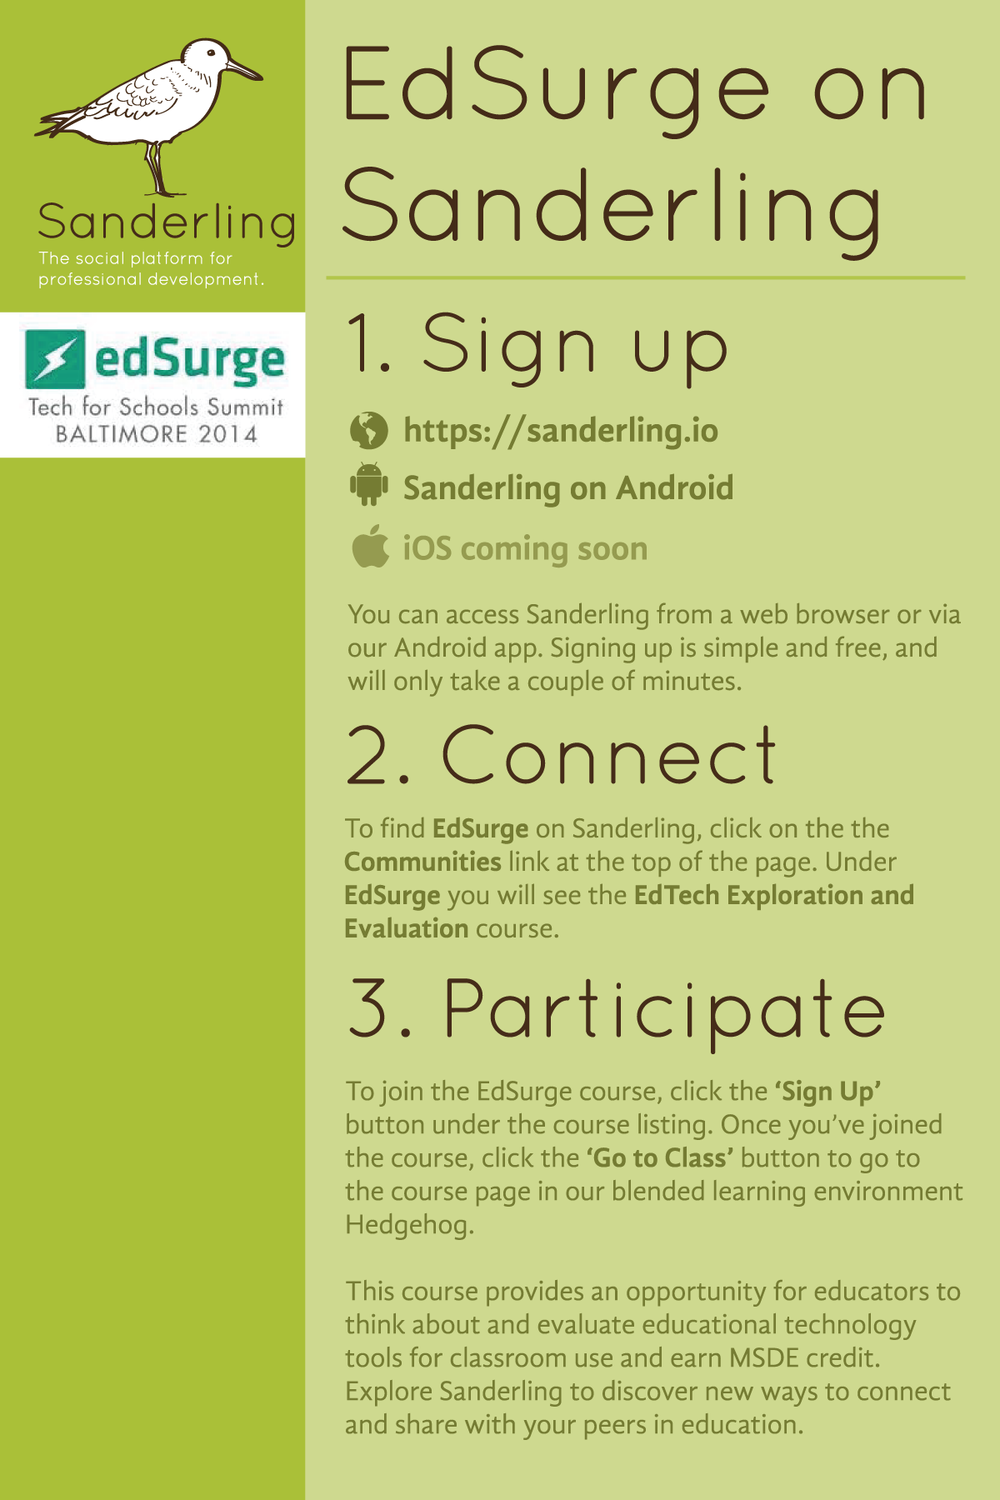 edsurge_how_to-01.png